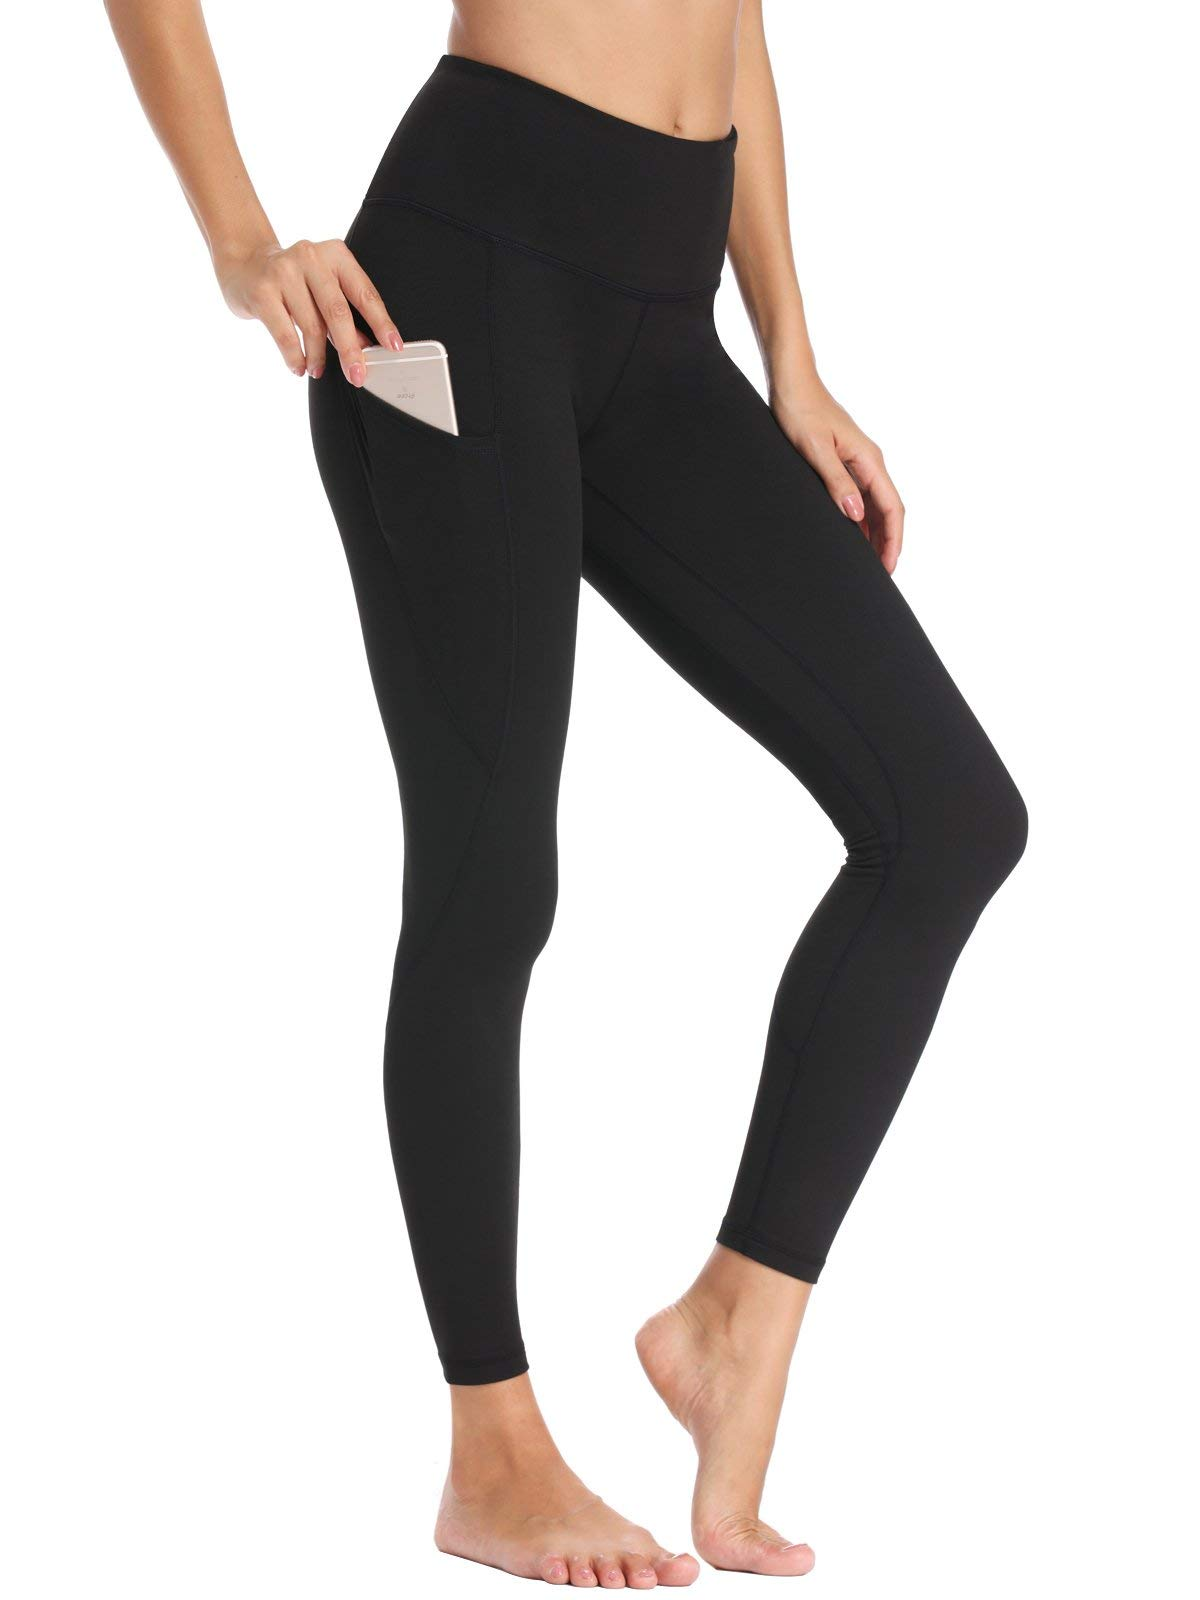 Willit Women's Fleece Lined Leggings Winter Yoga Running Leggings with Pockets High Waisted Pants Workout Thermal Tights